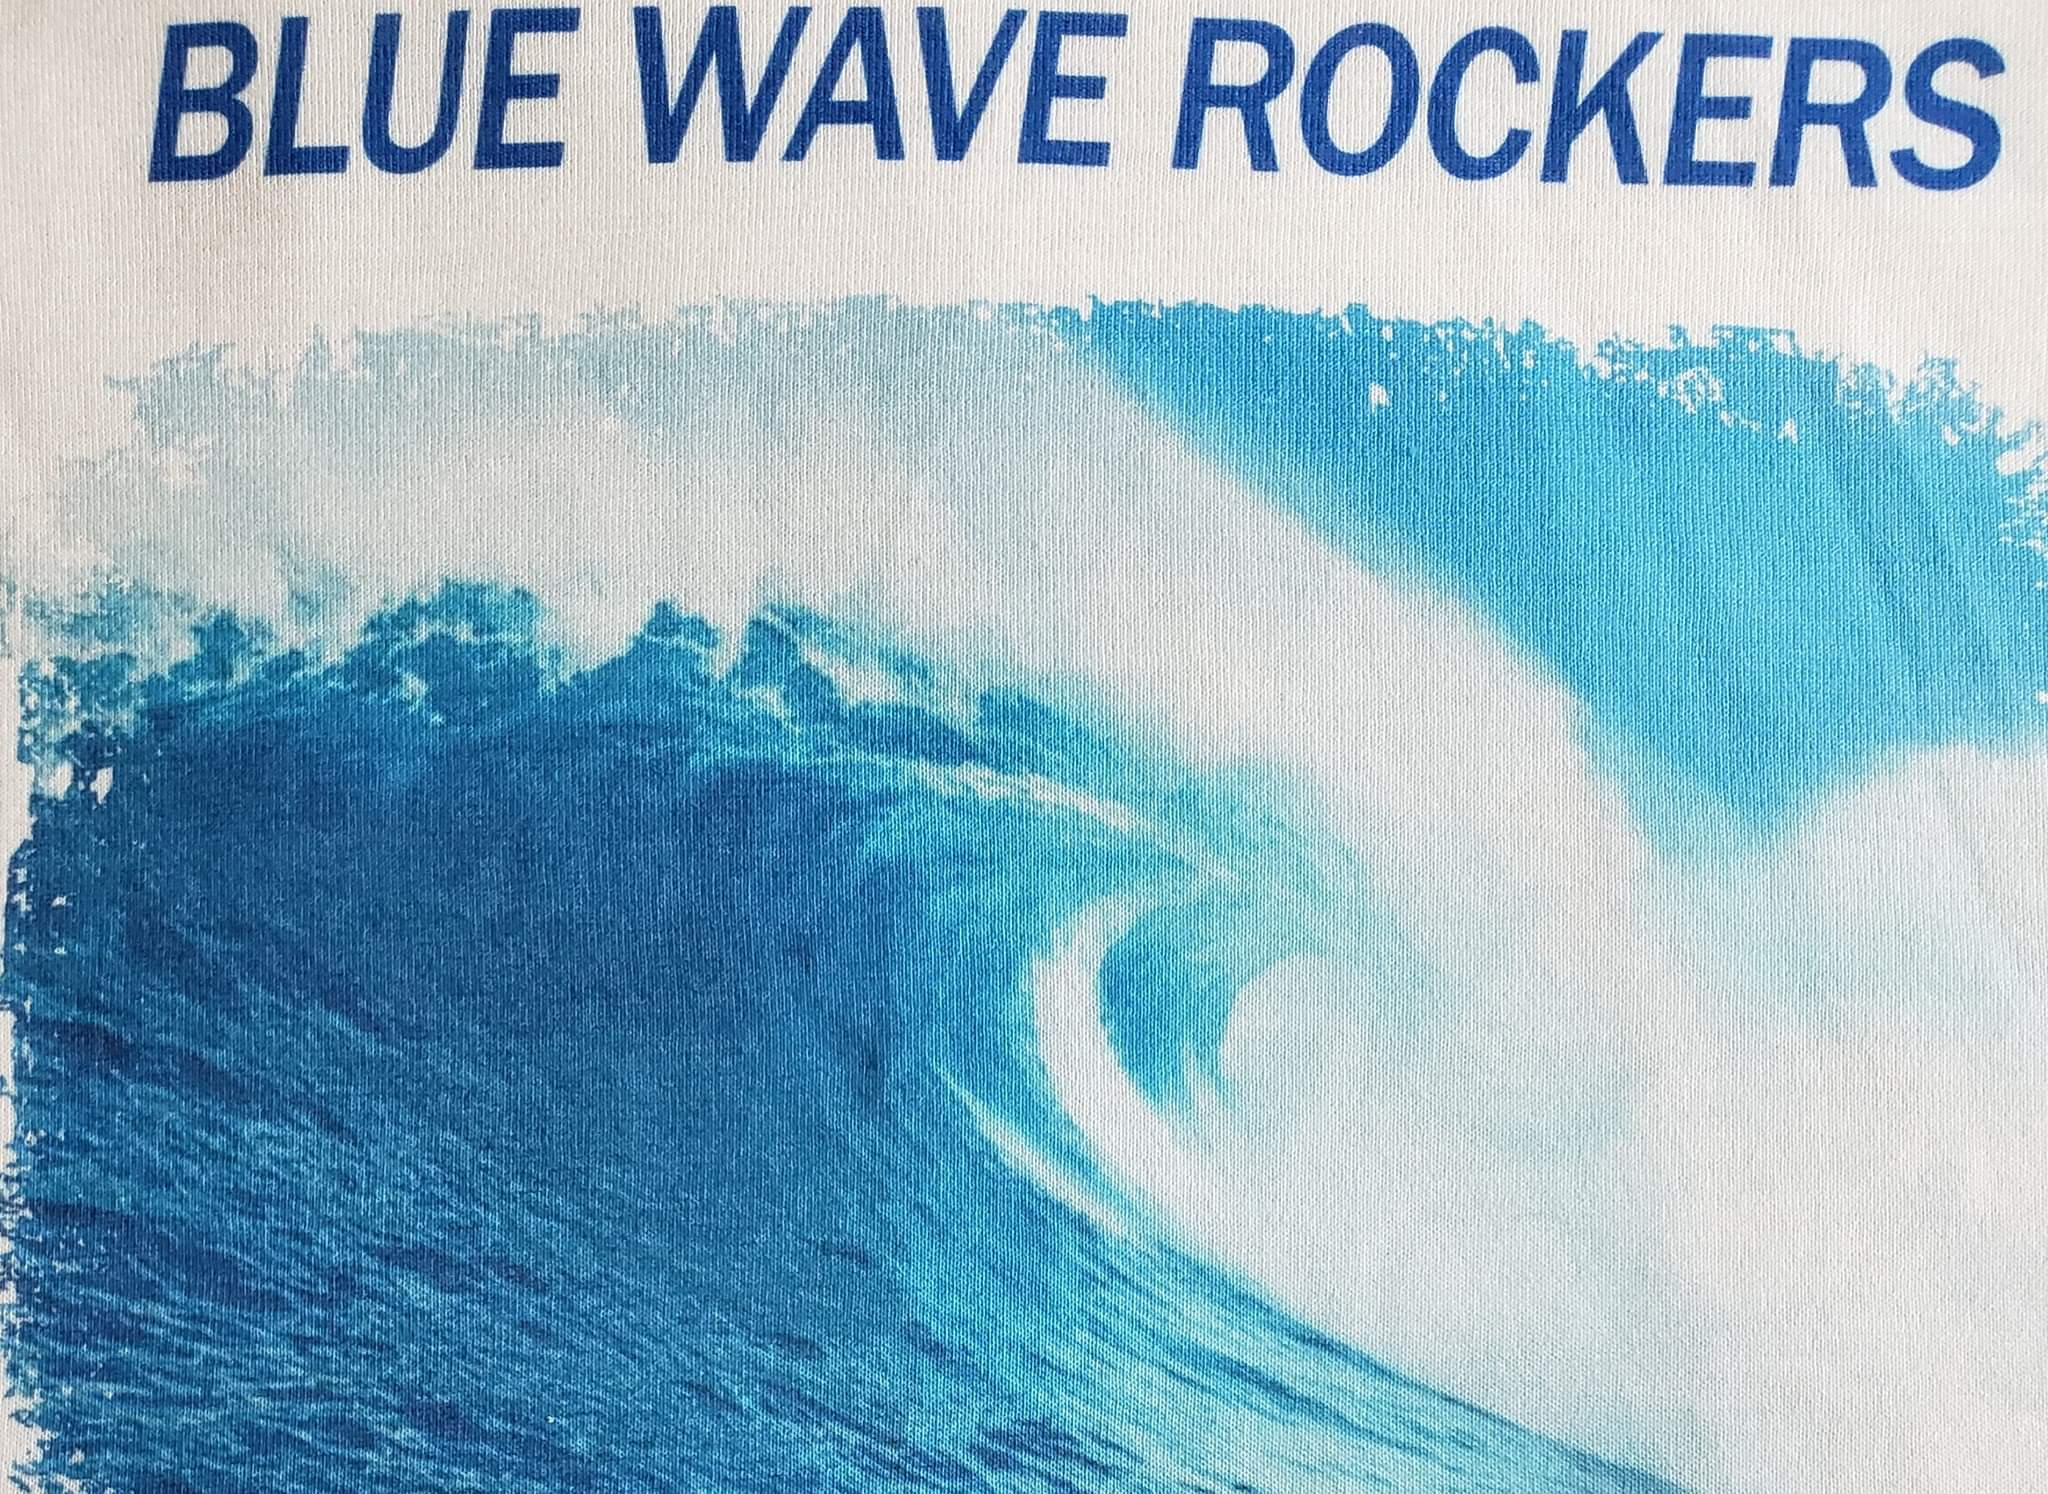 Blue Wave Rockers